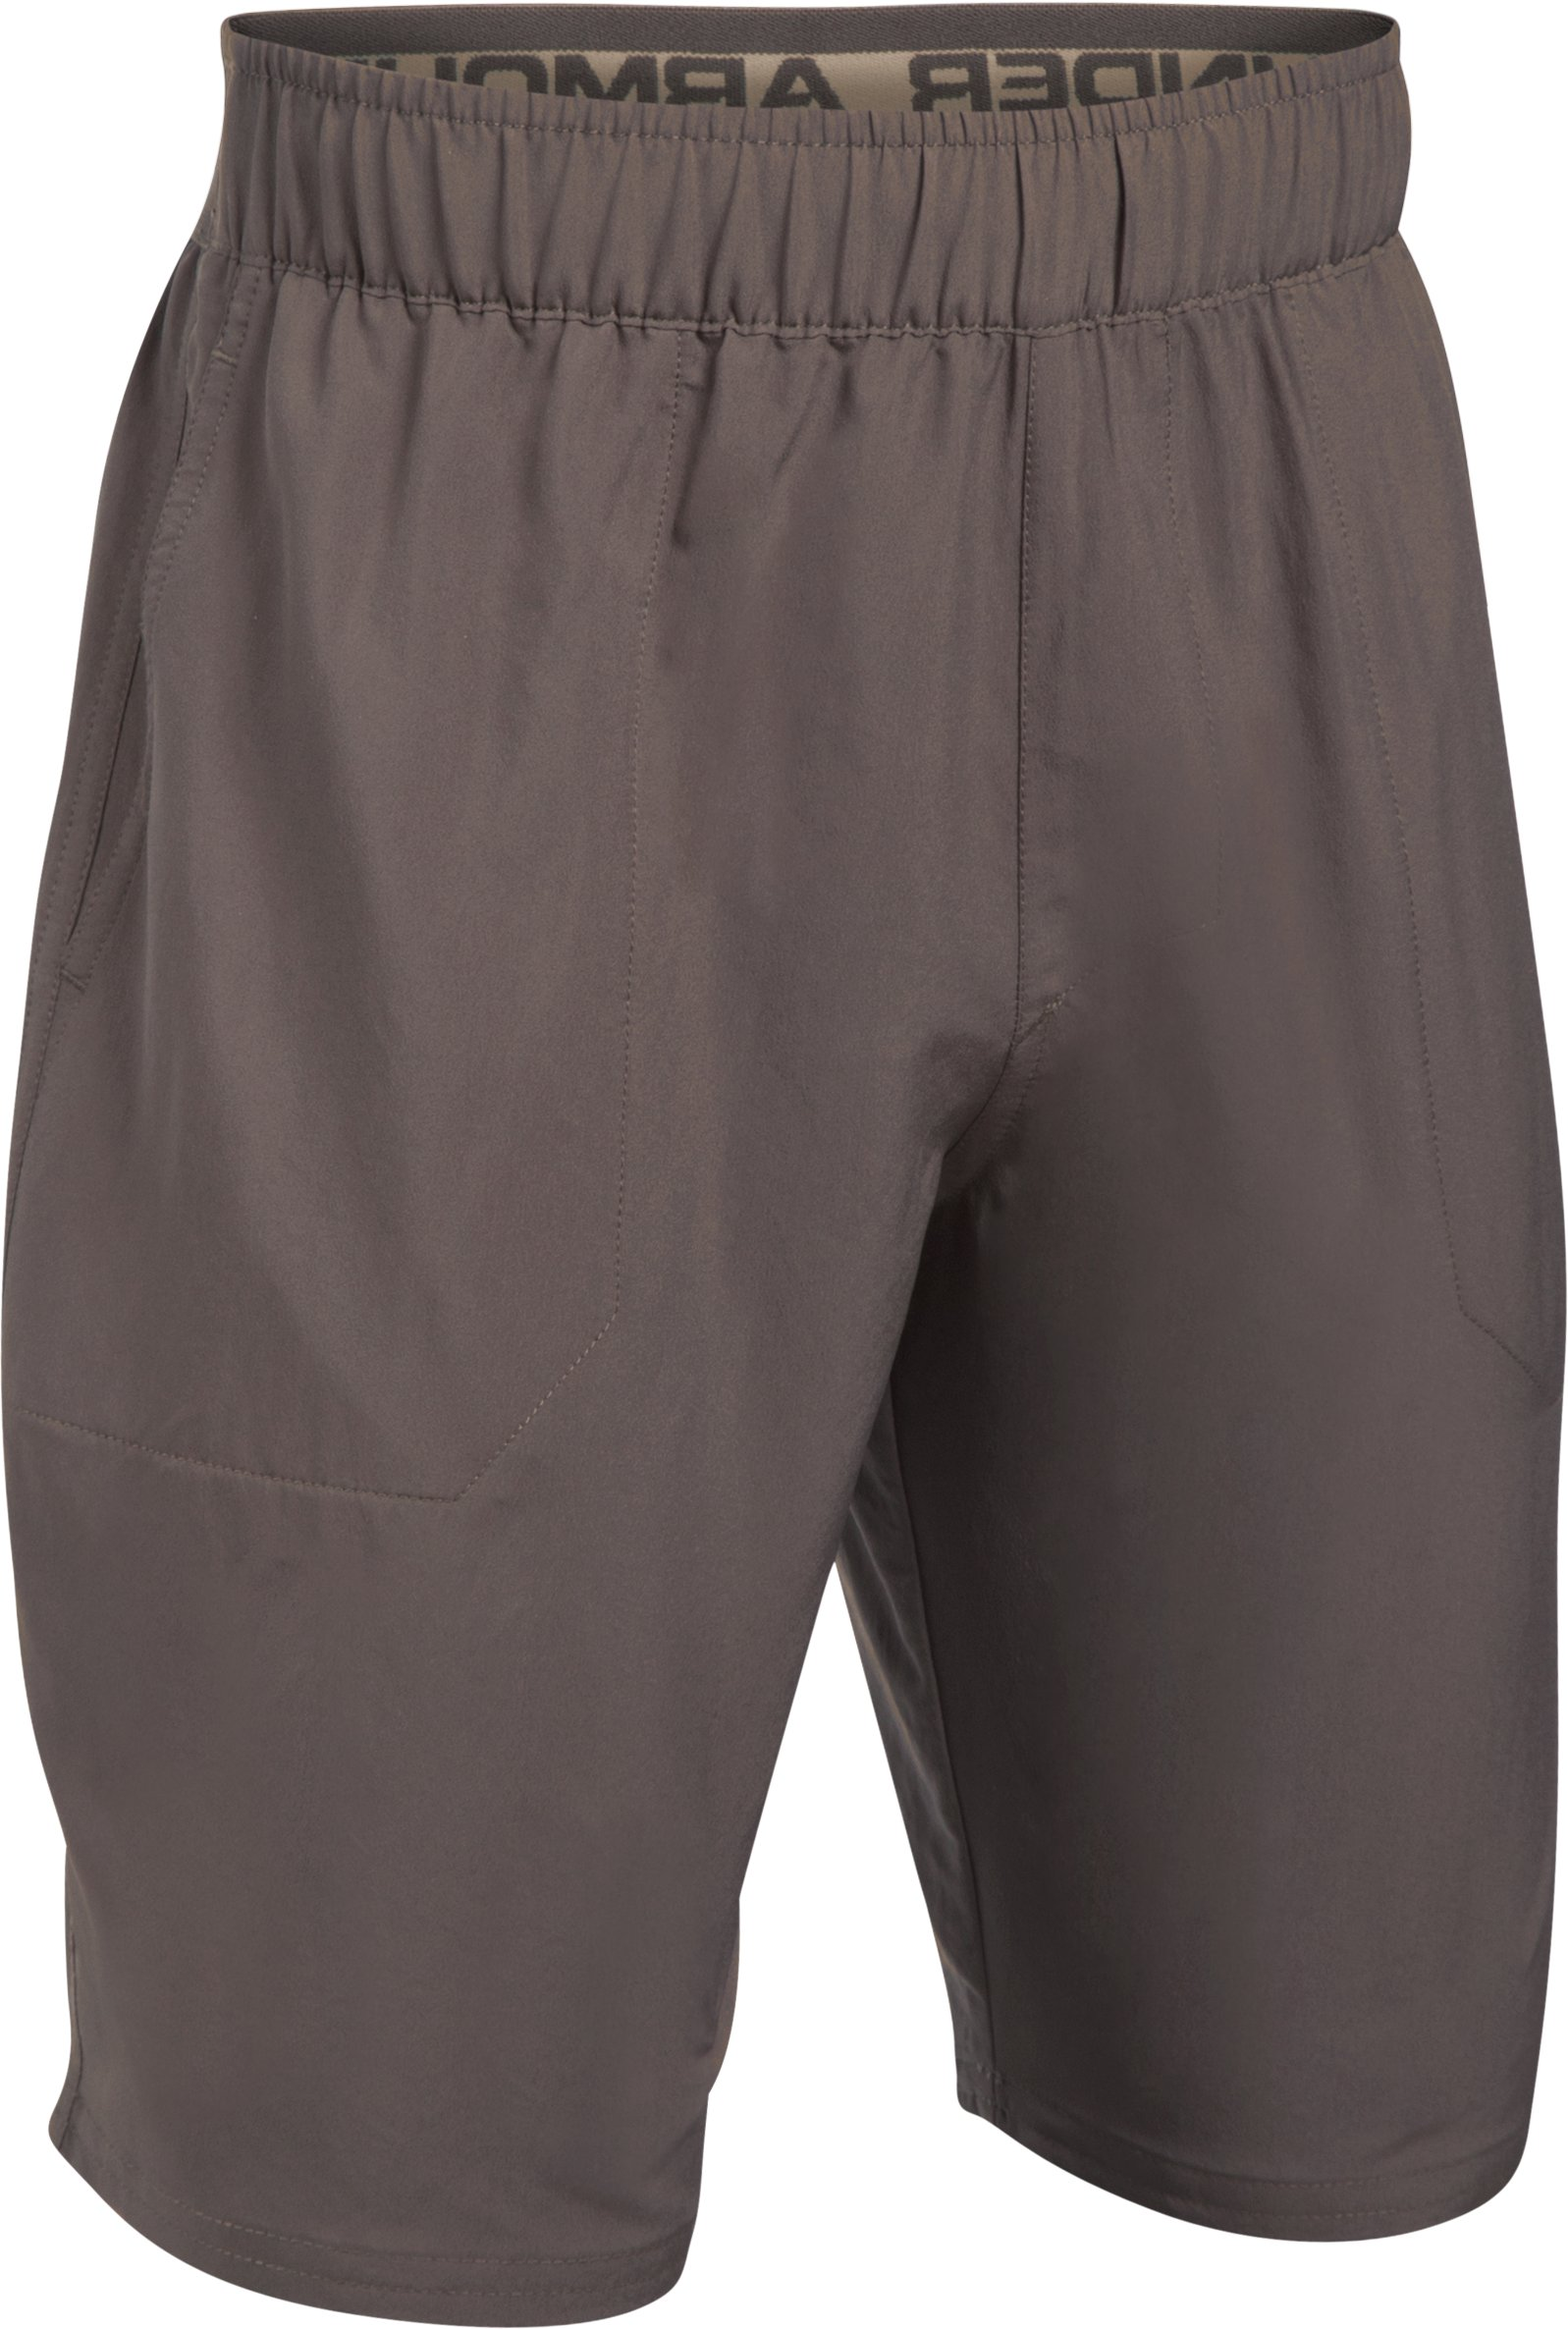 Boys' UA Coastal Amphibious Shorts, FRESH CLAY